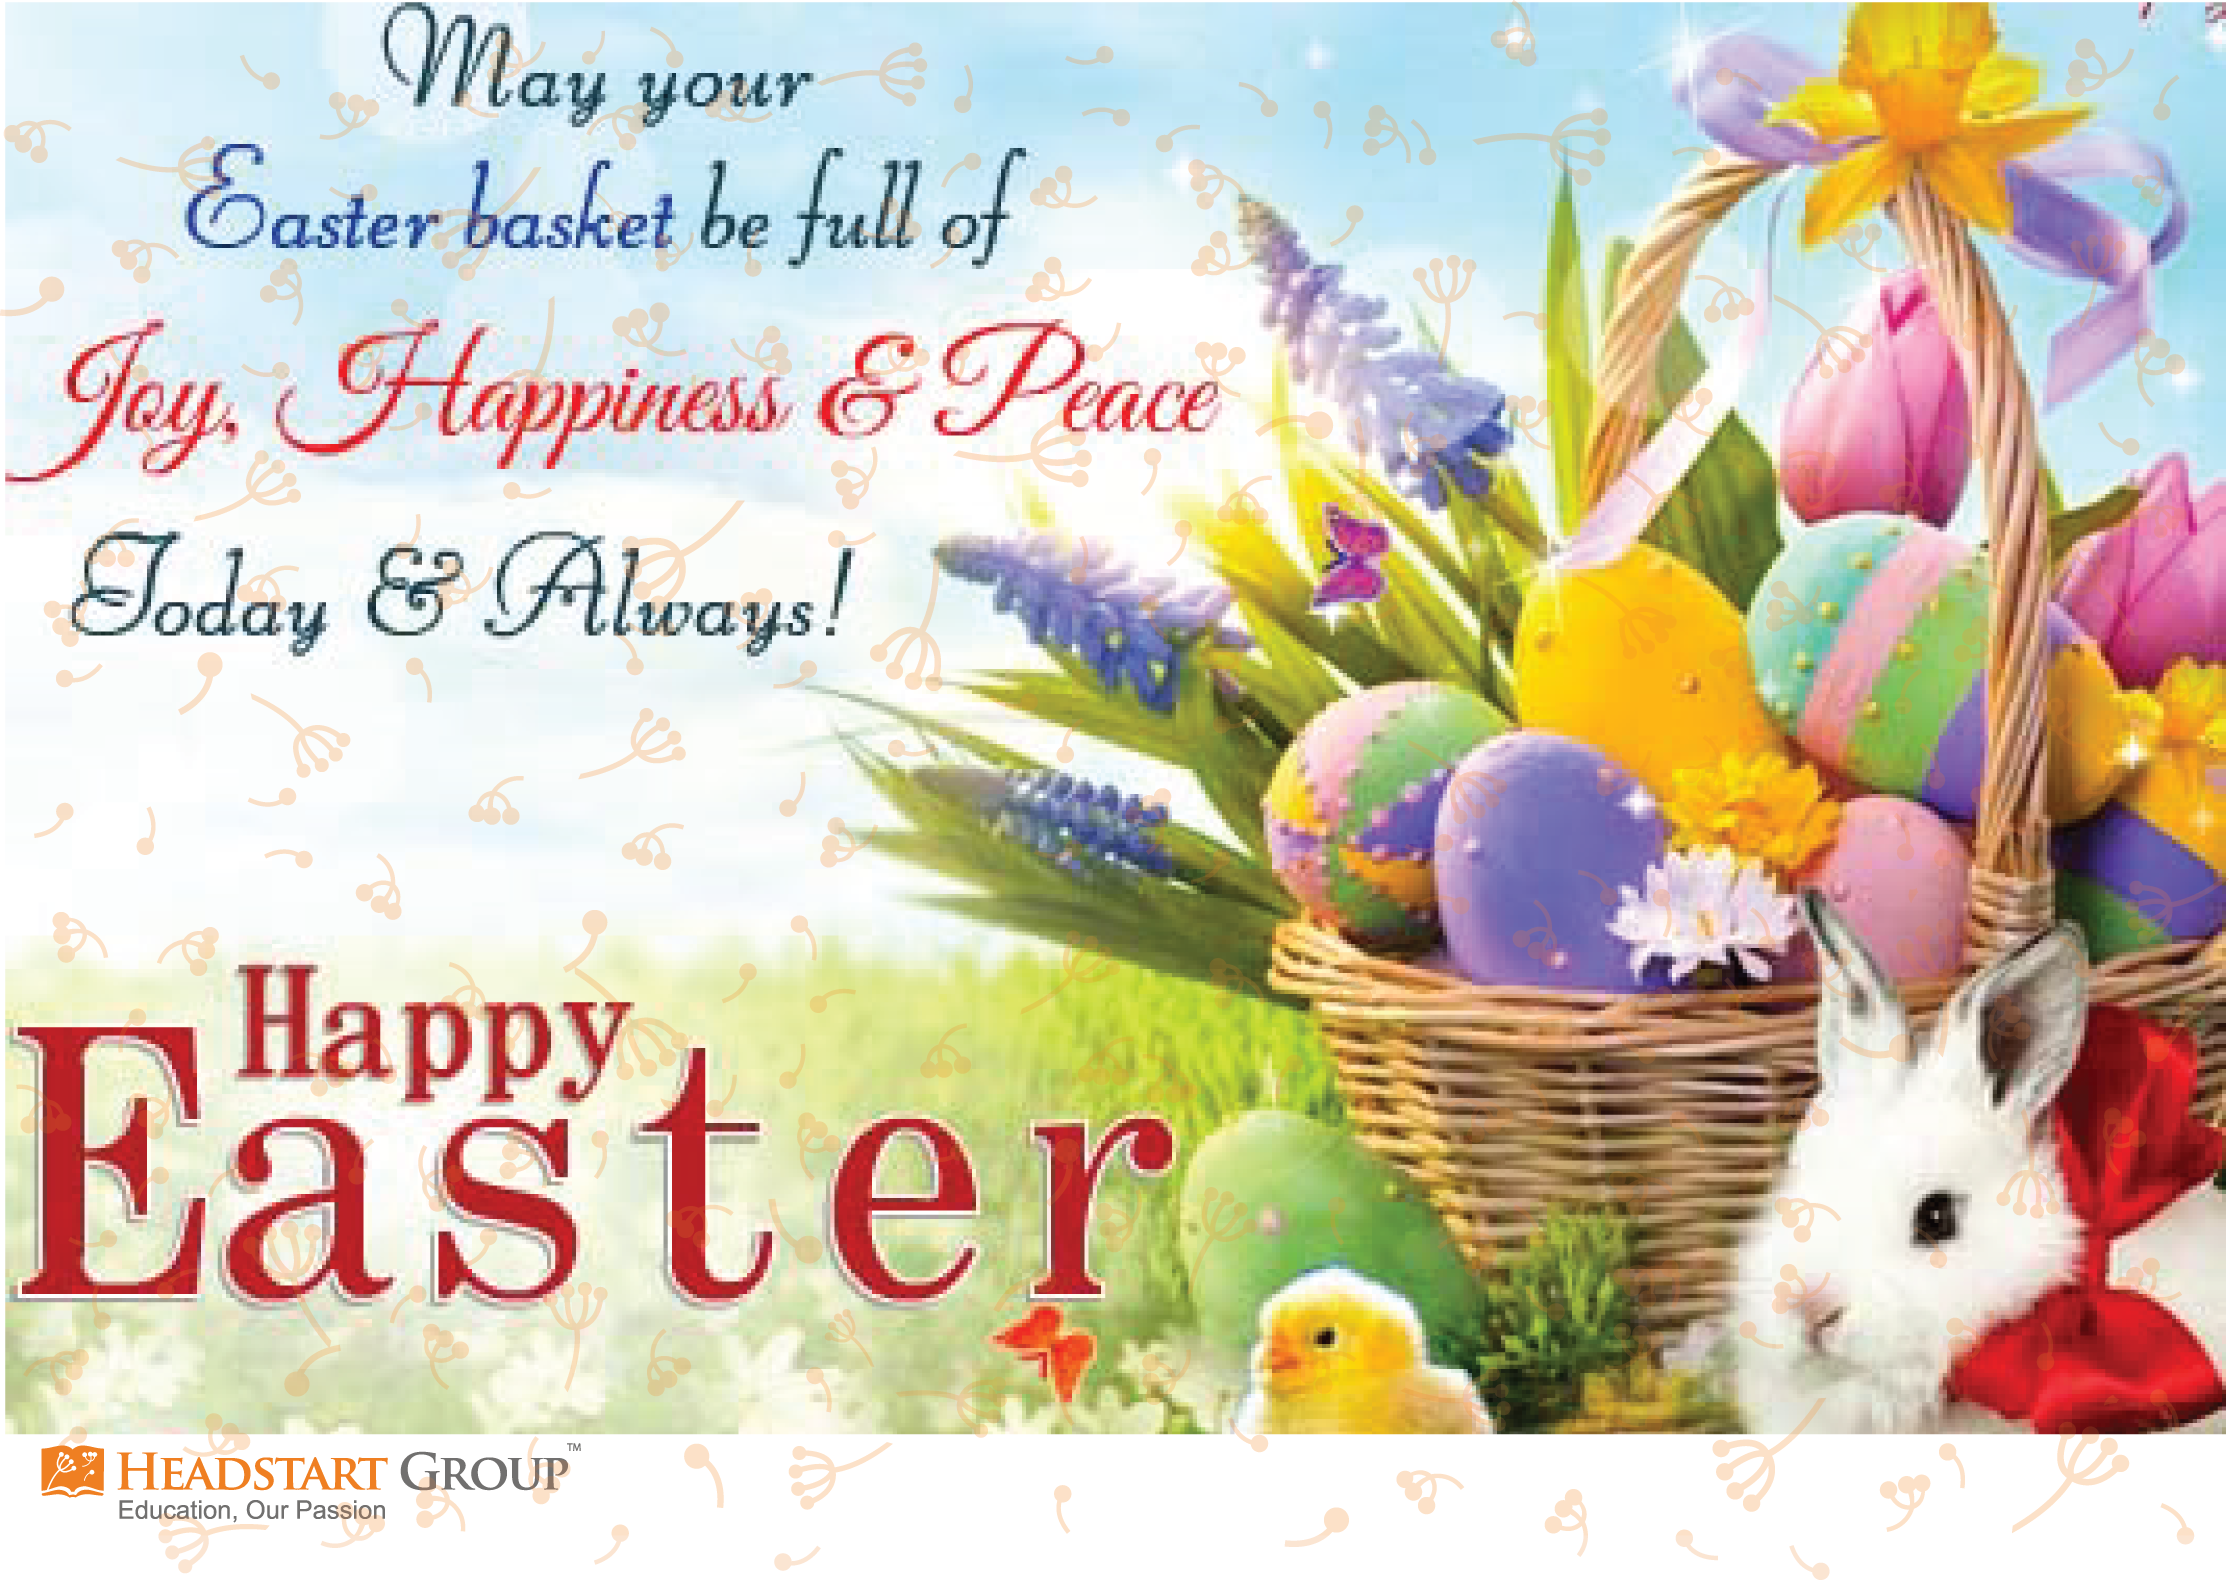 Pin By Headstart Group On Happy Easter Pinterest Happy Easter